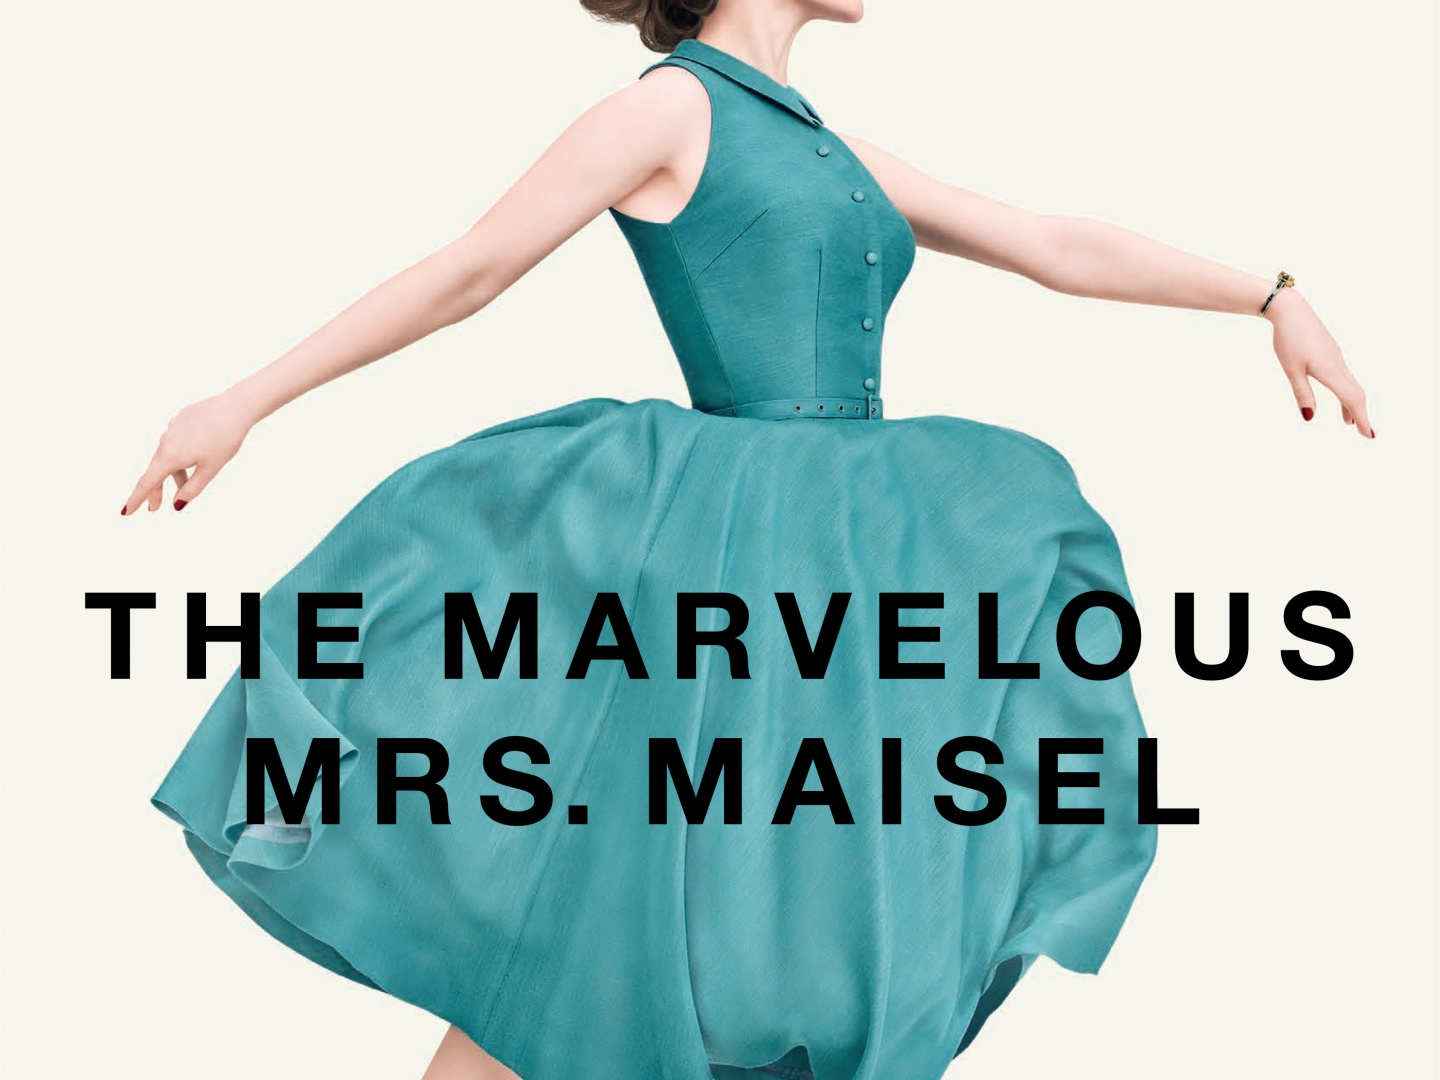 The Marvelous Mrs. Maisel Magazine Cover Takeover (Variety) Thumbnail